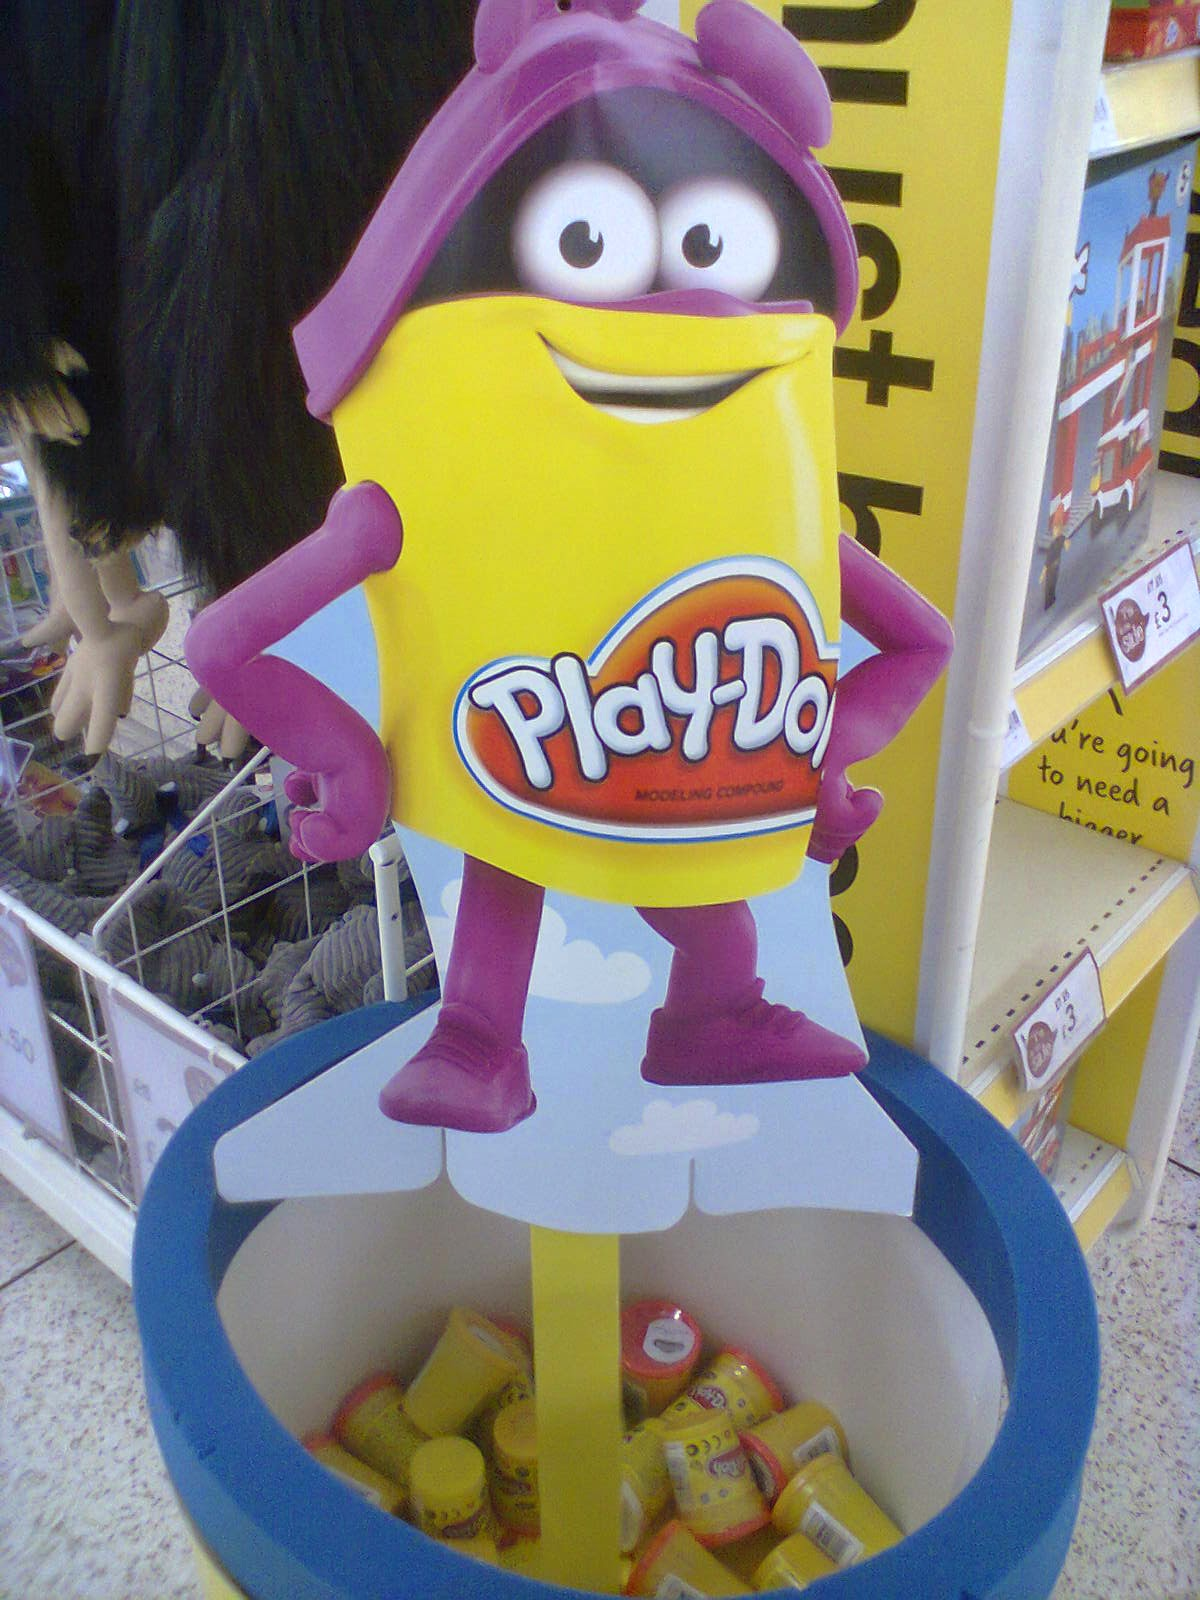 A big barrel of Play-Doh. This was as close as I dared get to it